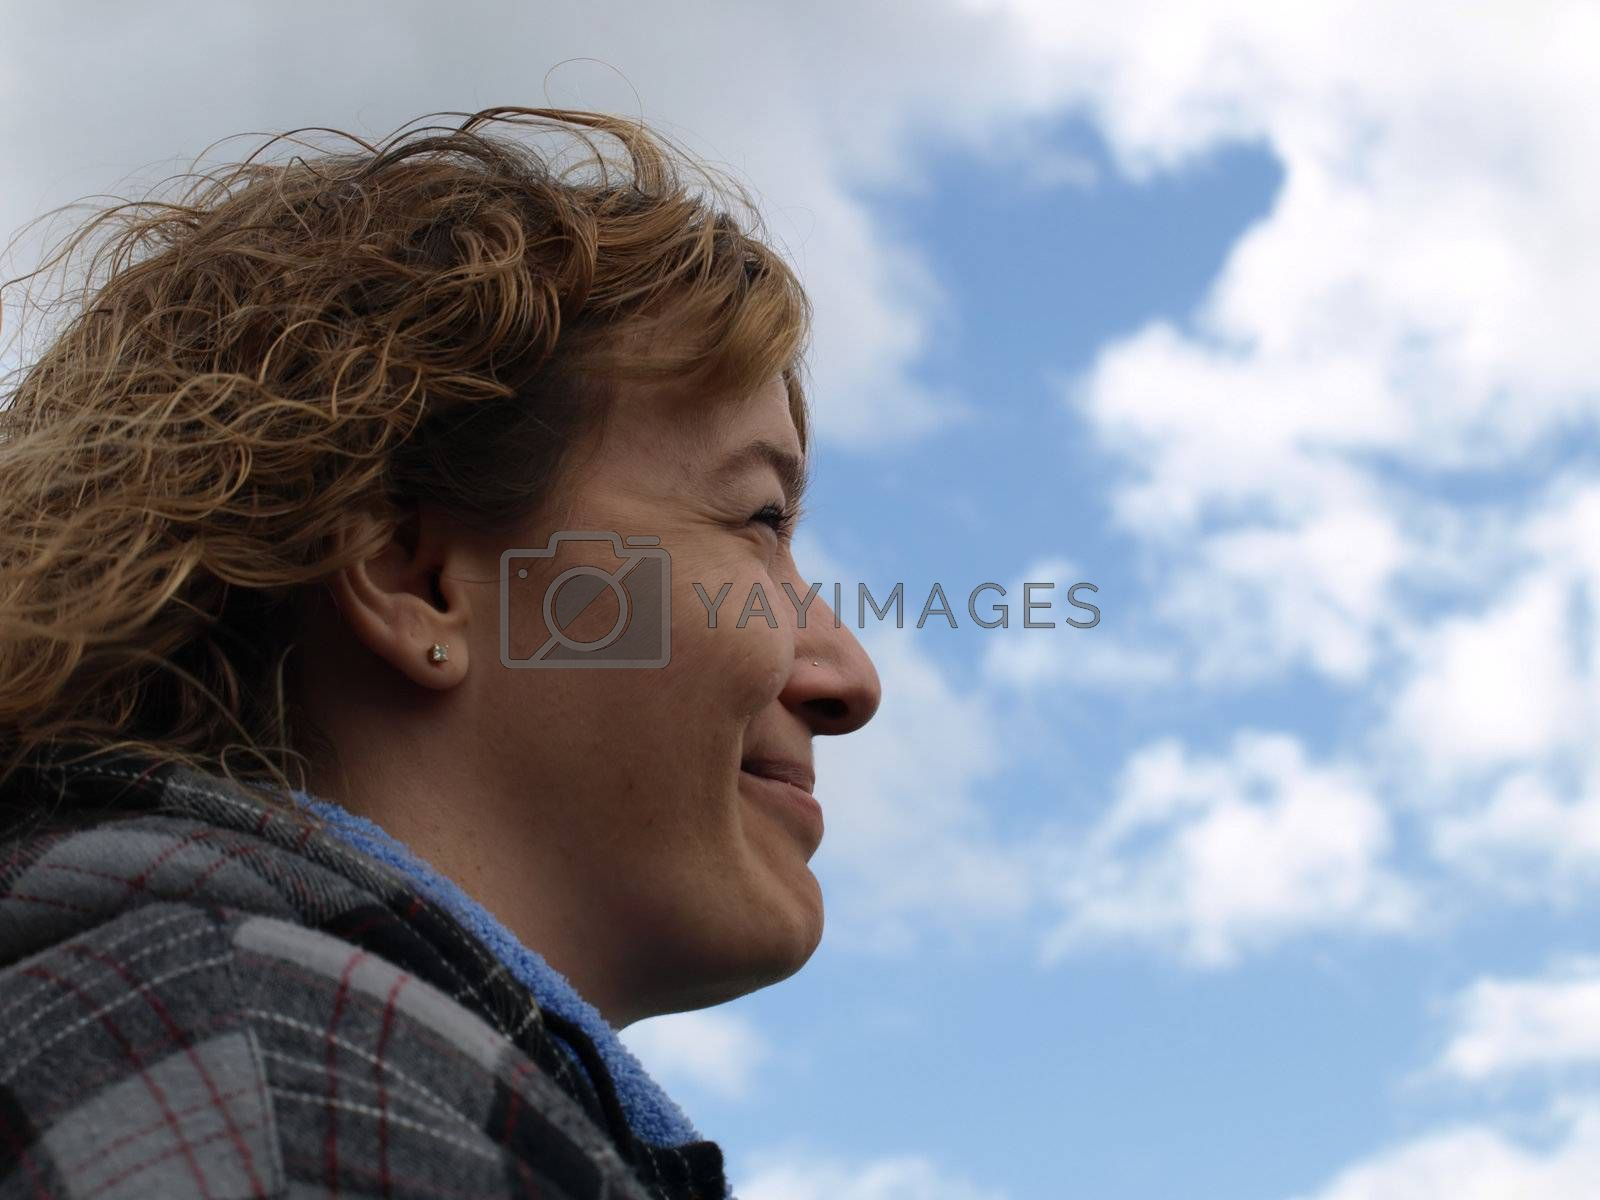 A woman smiles, her back to the gray clouds, looking toward the bright sunny skies.